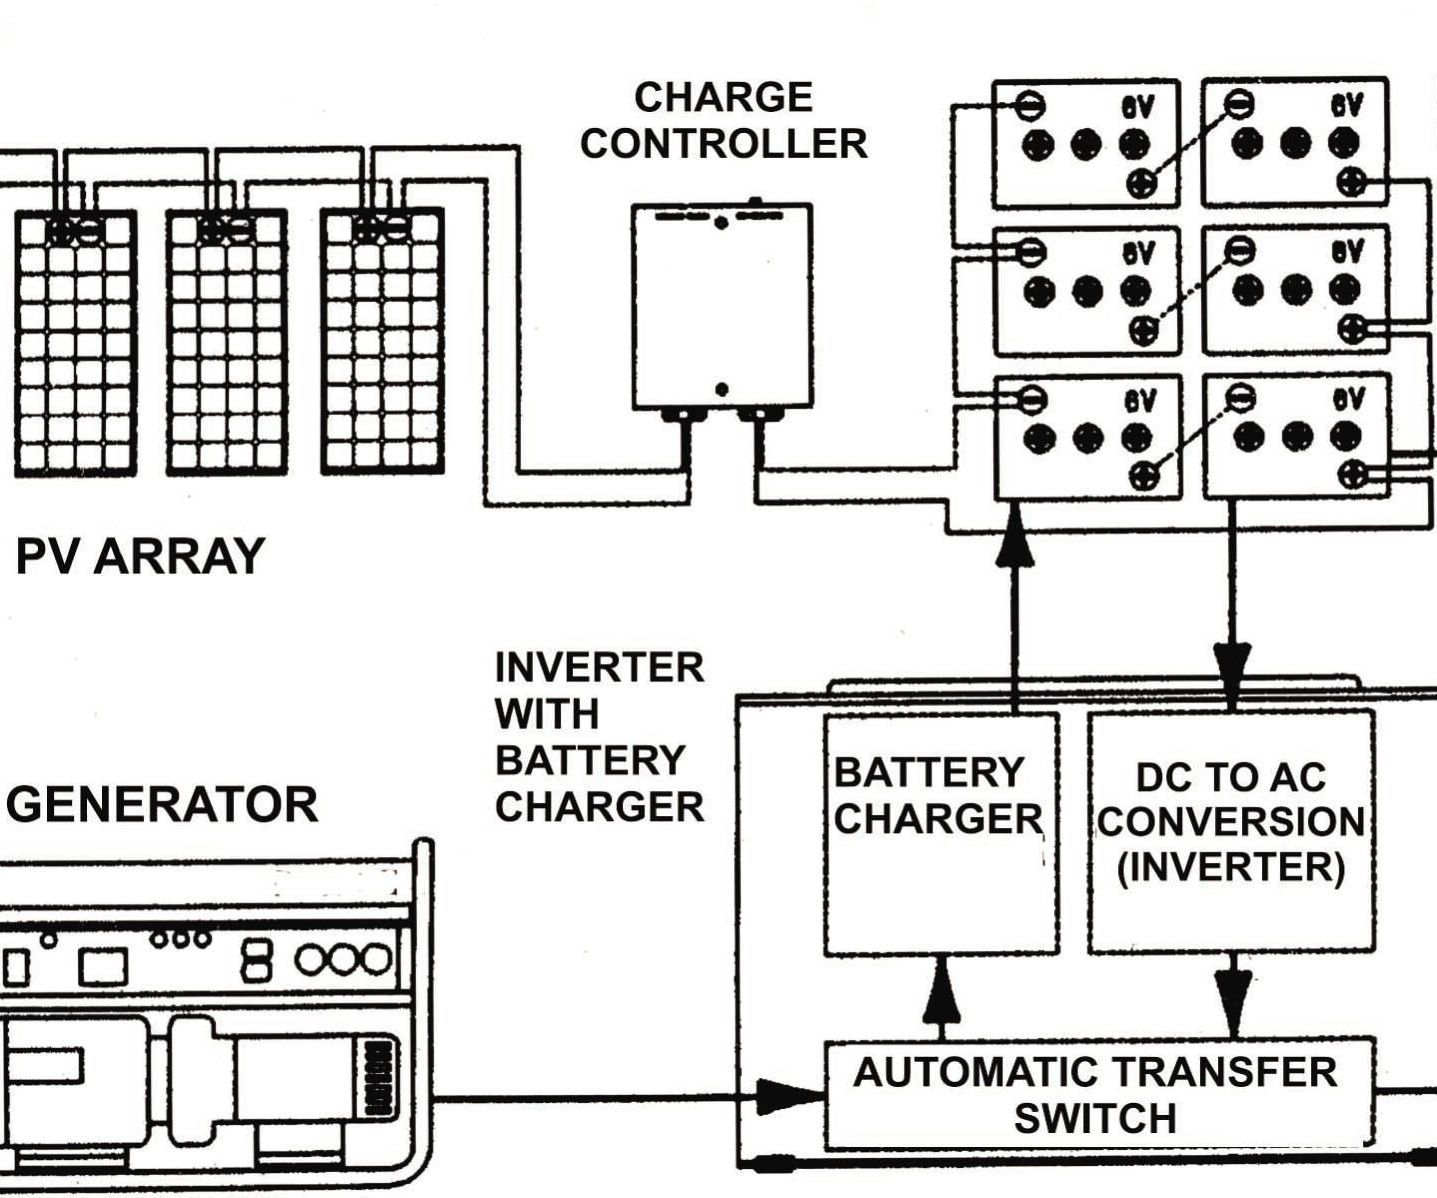 Diagram Of A Off Grid Solar Power System With Generator Back Up Off Grid Solar Power Off Grid Solar Solar Power System